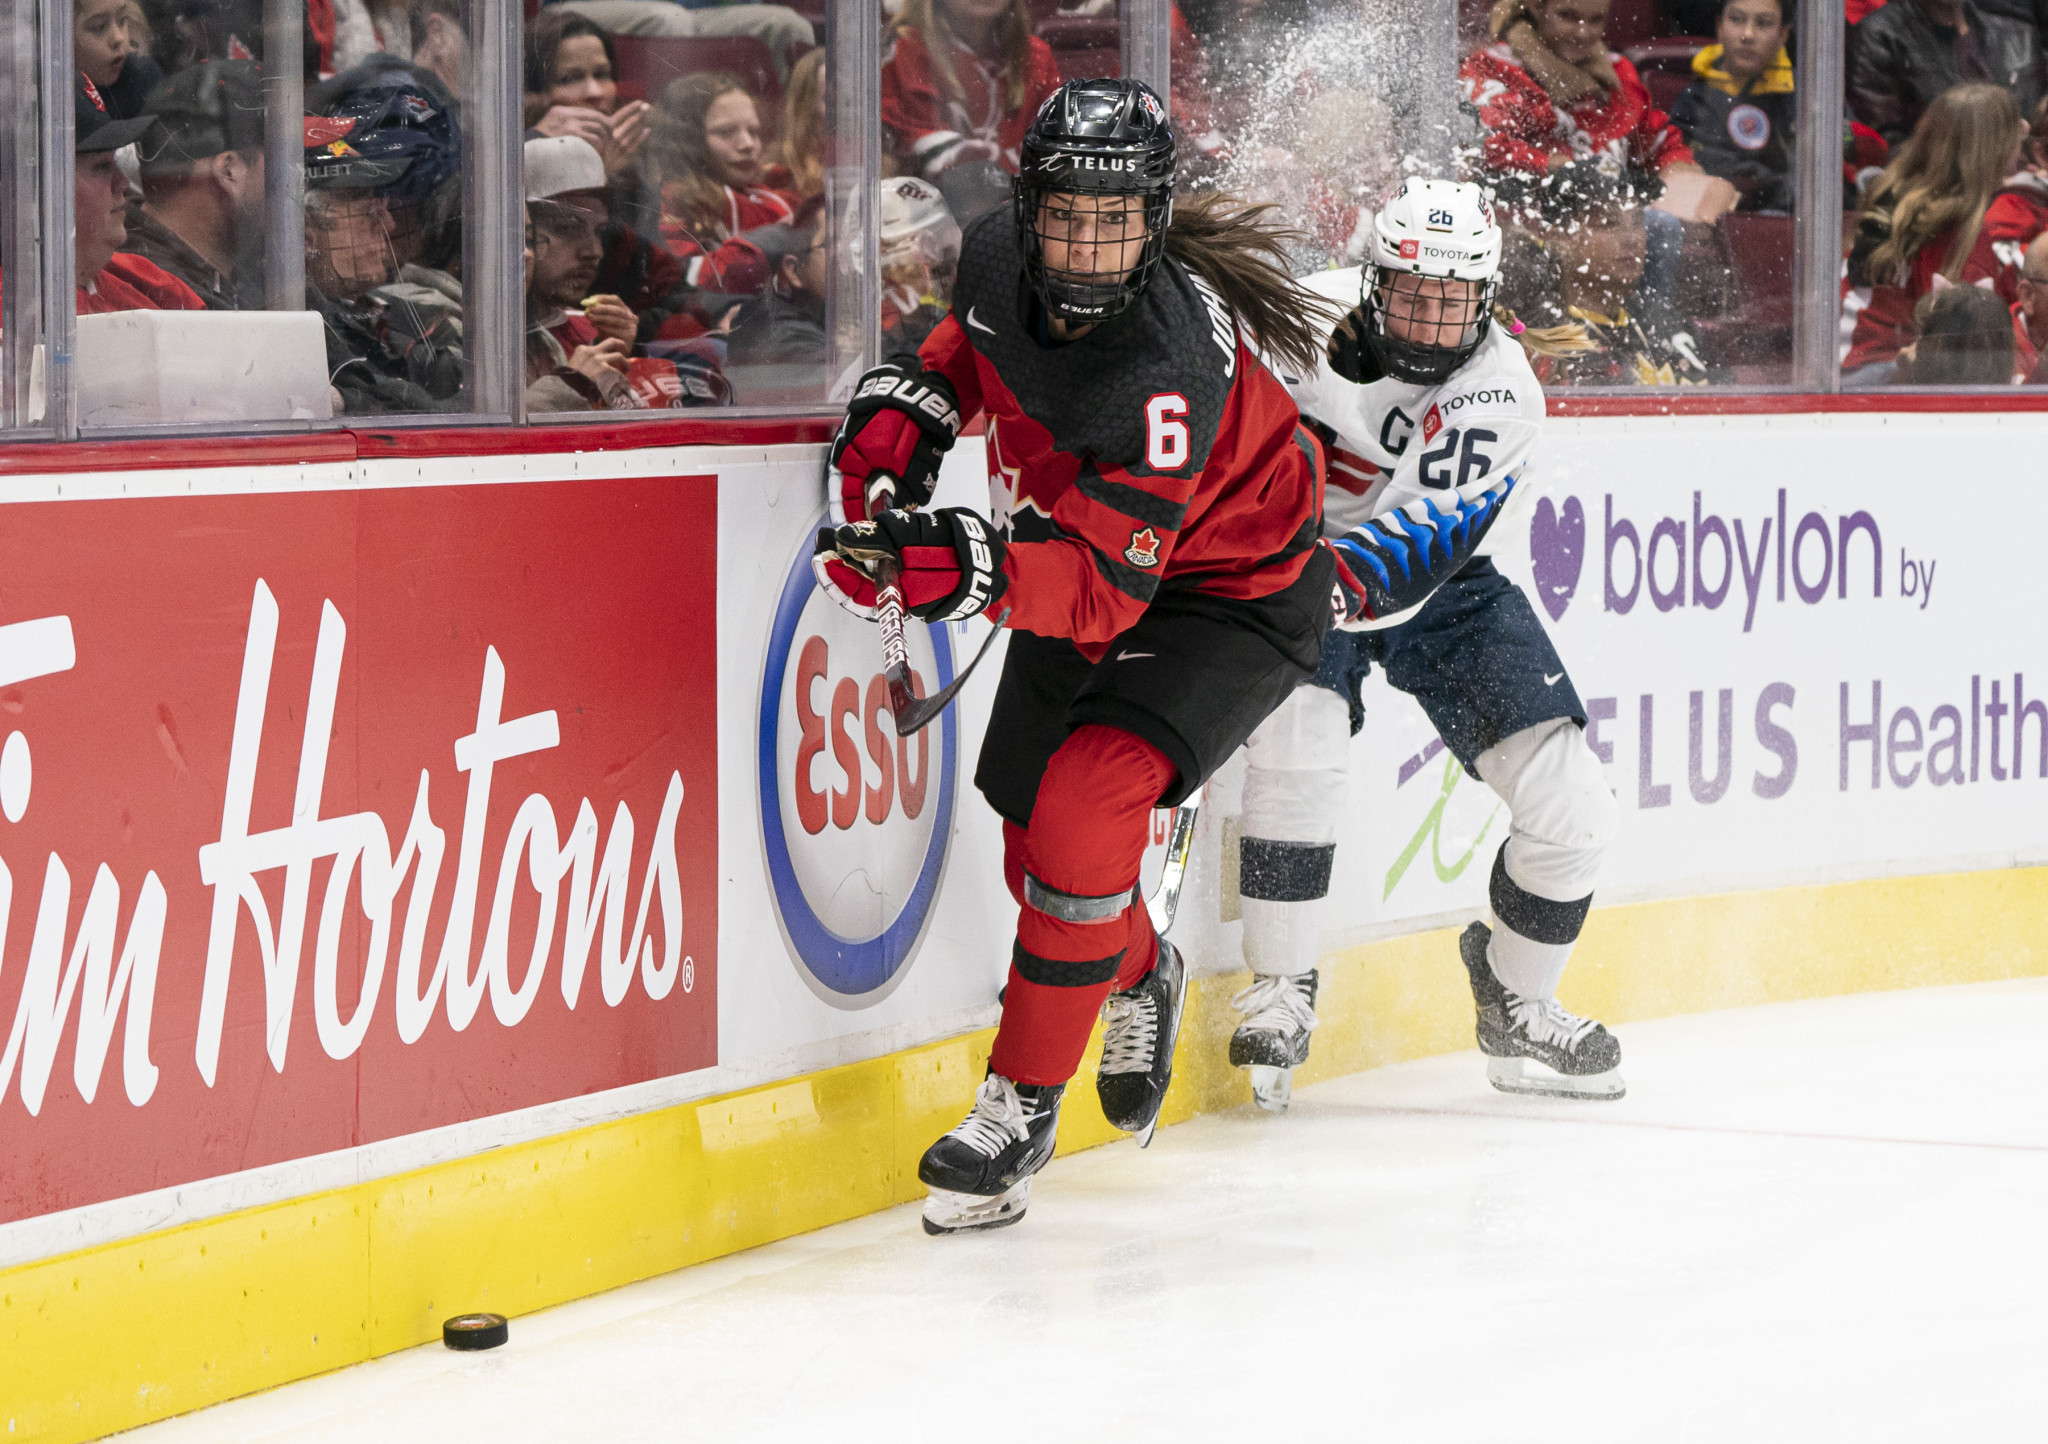 Canada is expected to stage the Women's World Championship but a venue has yet to be confirmed ©Getty Images